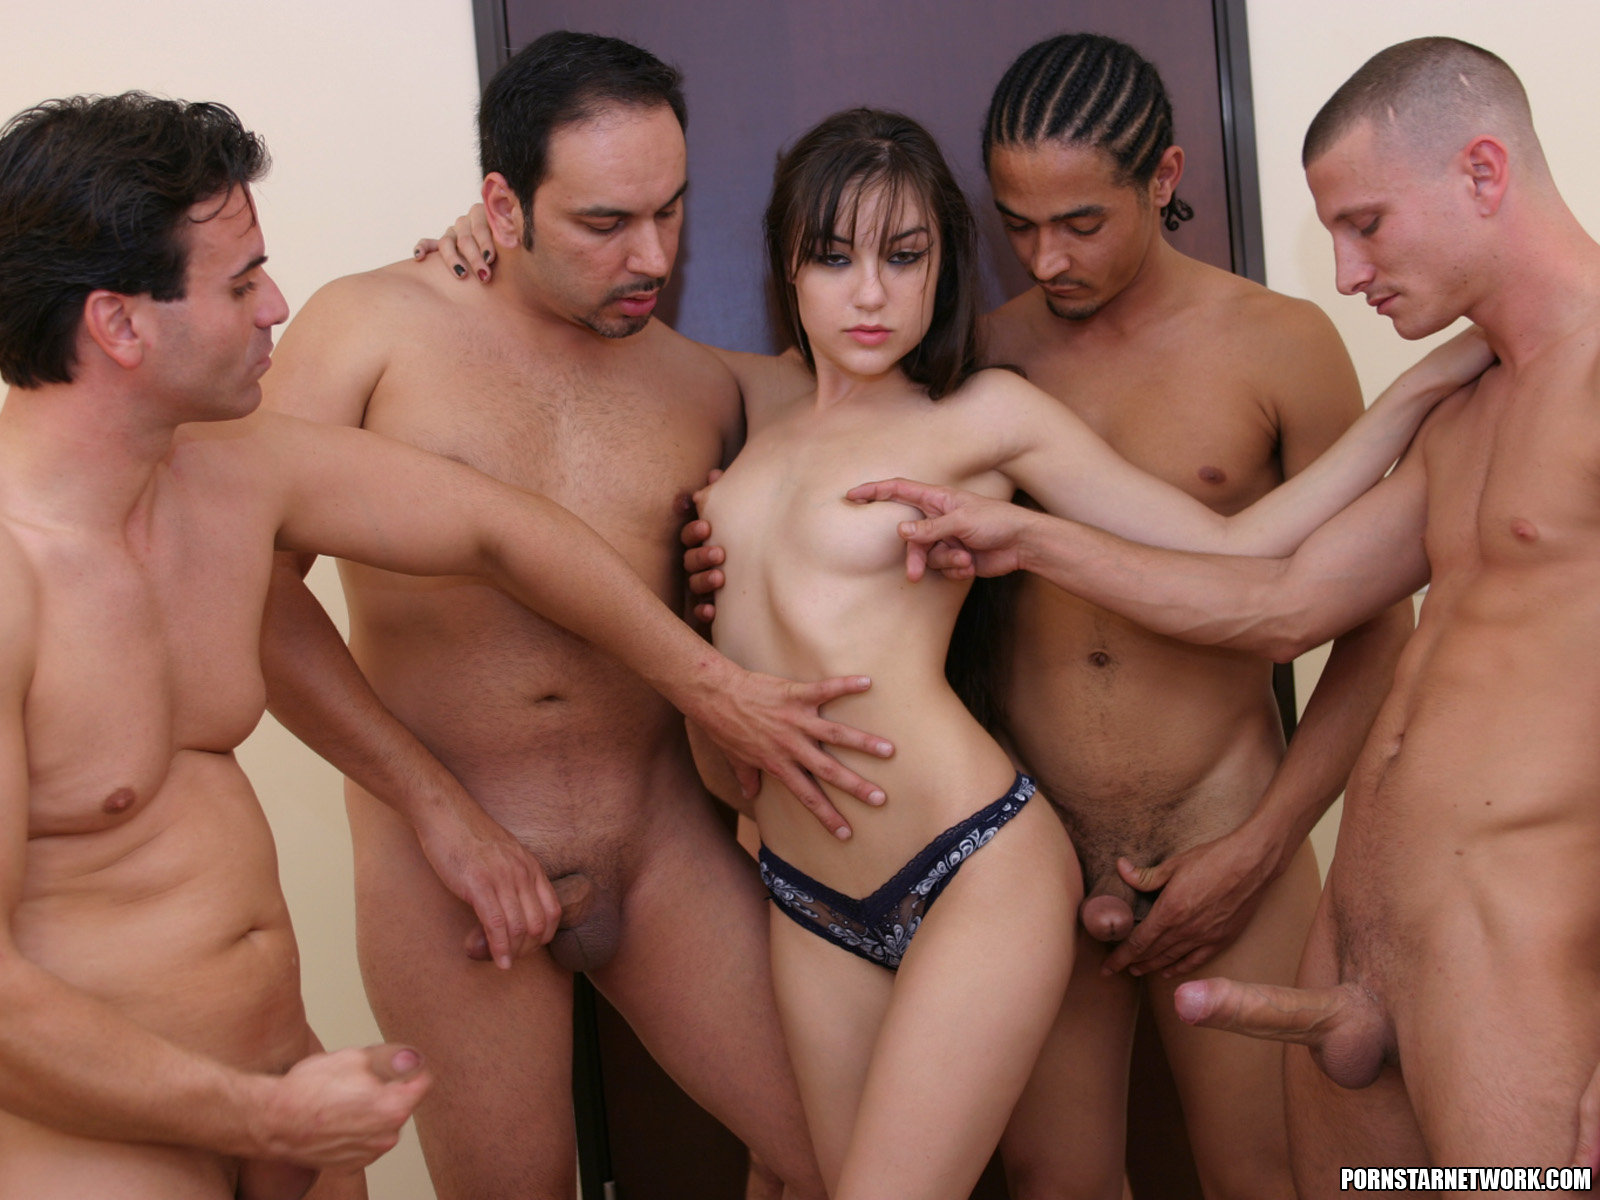 ... Perky Brunette Sasha Grey Gets Her Face Blasted In Cum 9 ...